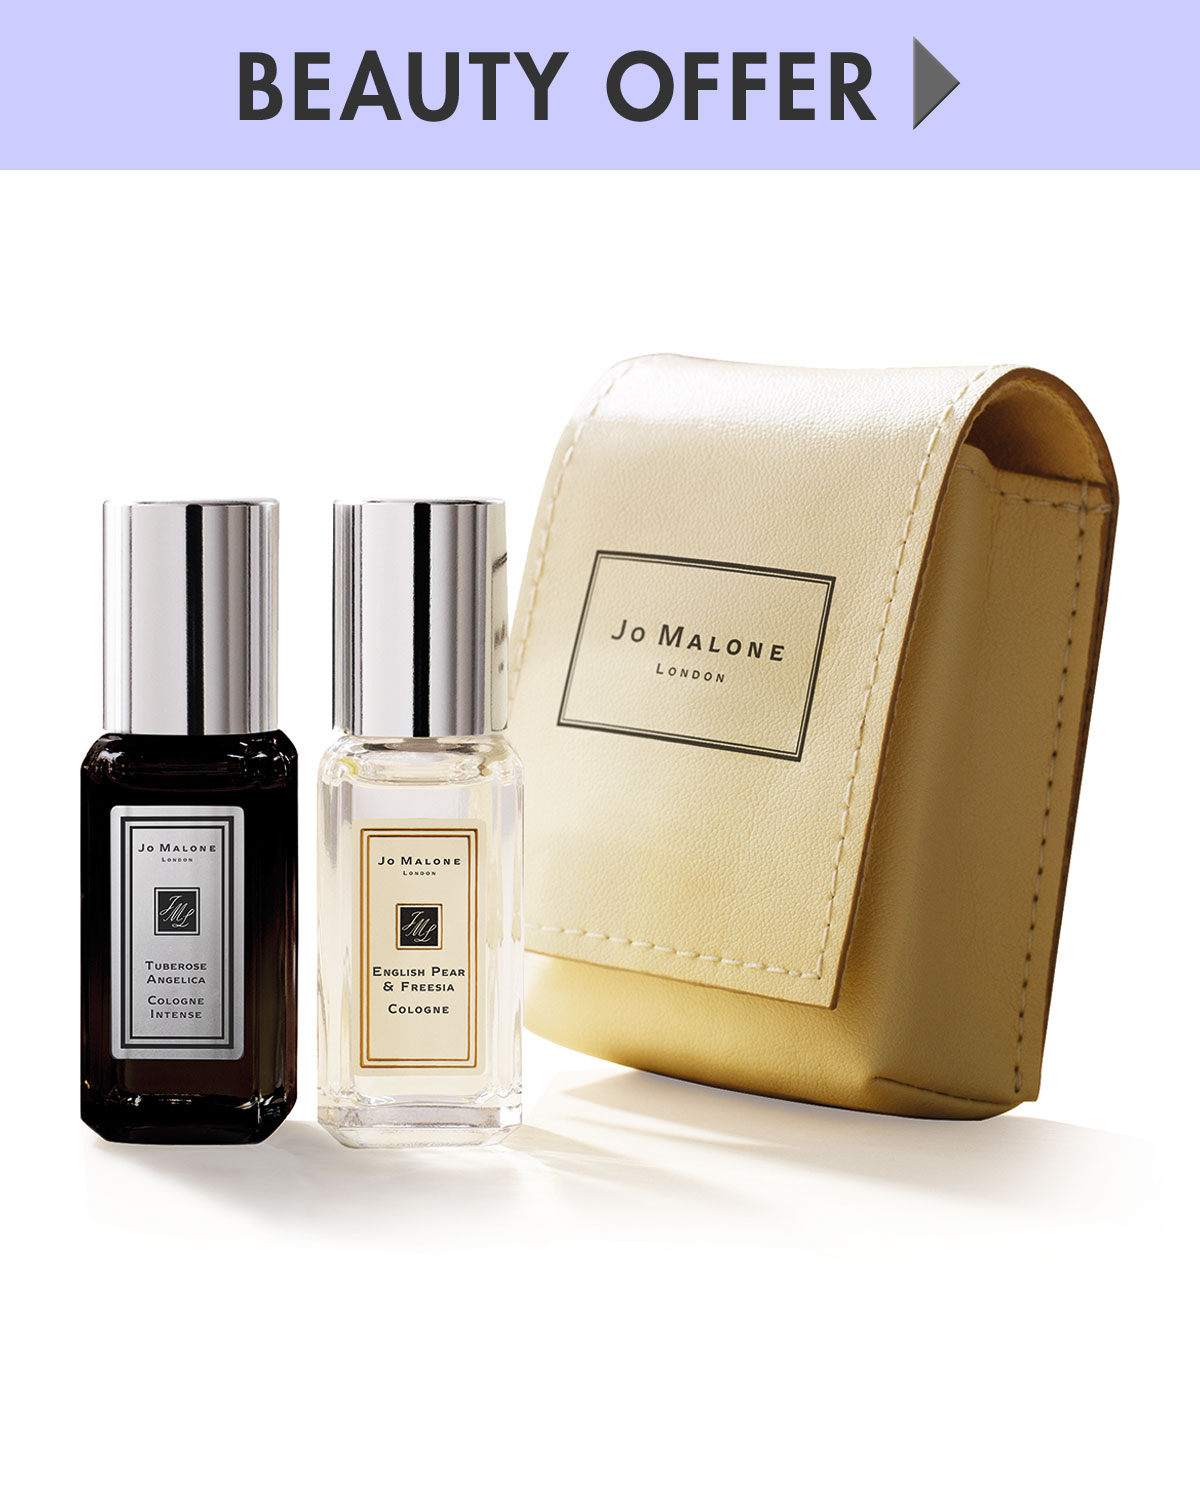 Jo Malone London Yours With Any 175 Jo Malone London Purchase